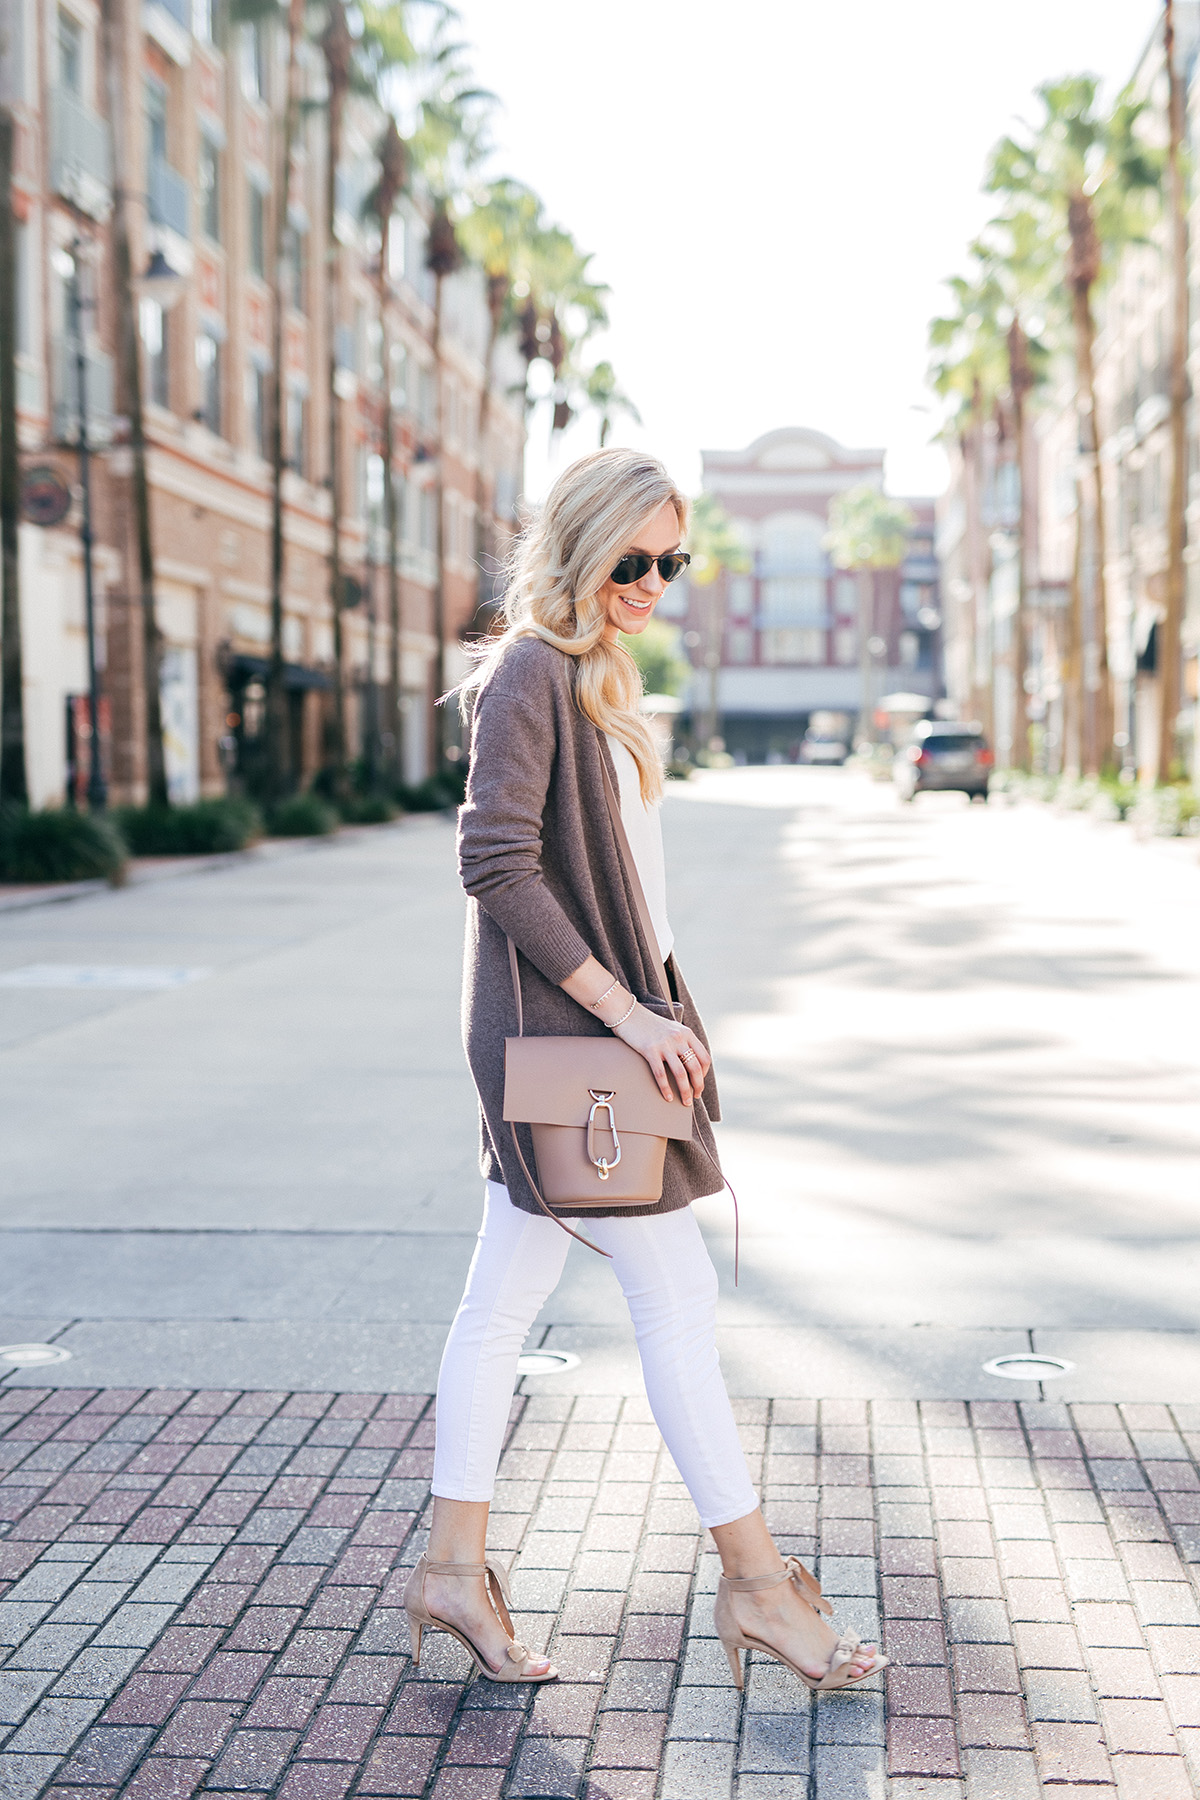 How to Wear White After Labor Day | White Jeans For Fall